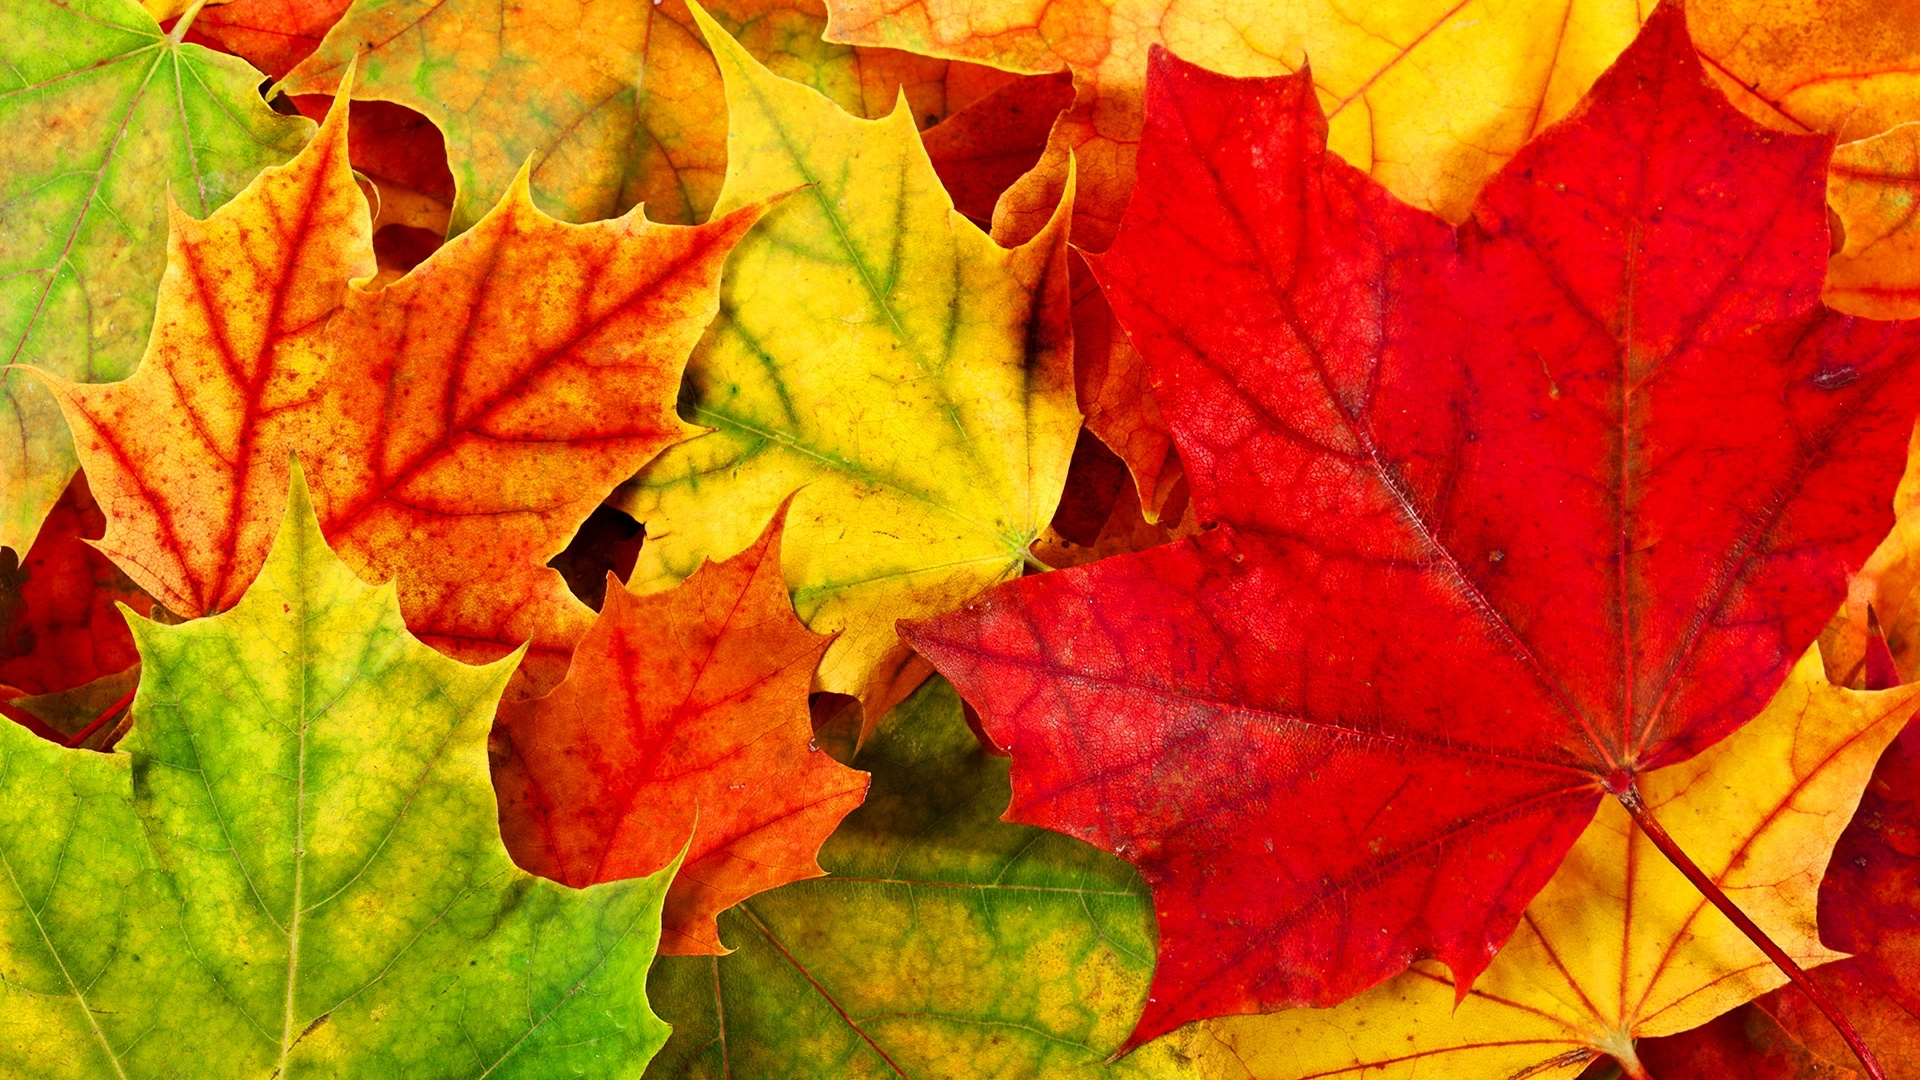 Free Desktop Wallpaper Autumn Leaves: Autumn Leaves Wallpapers High Quality